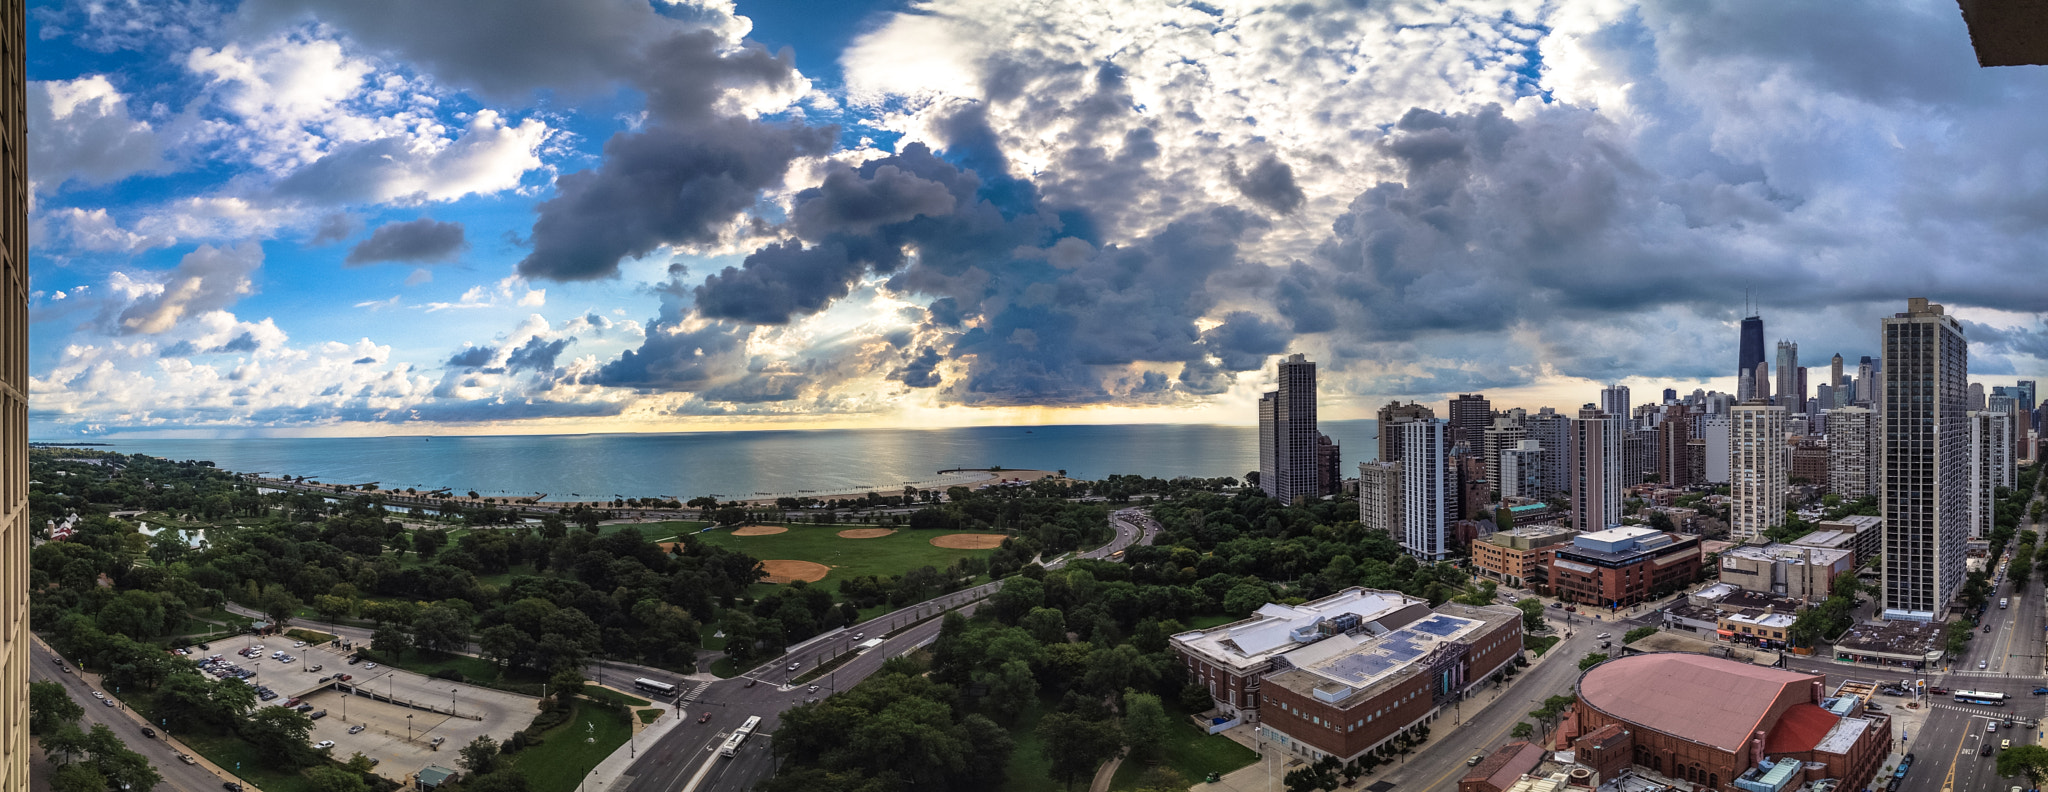 Photograph August Clouds Pano by Chris Allen on 500px